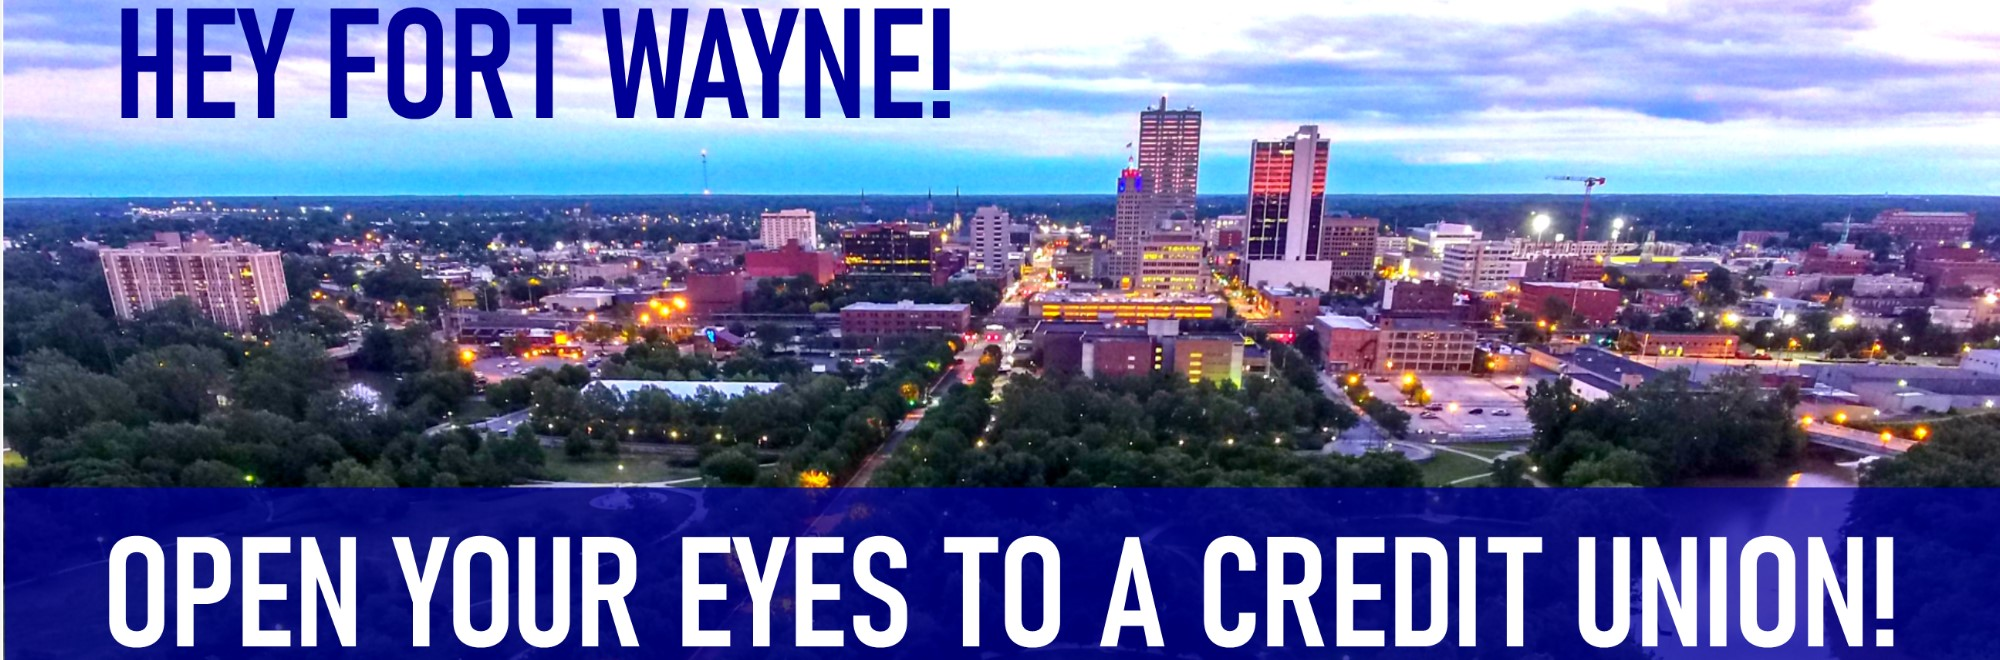 Hey Fort Wayne! Open your eyes to a credit union! Skyline of downtown Fort Wayne